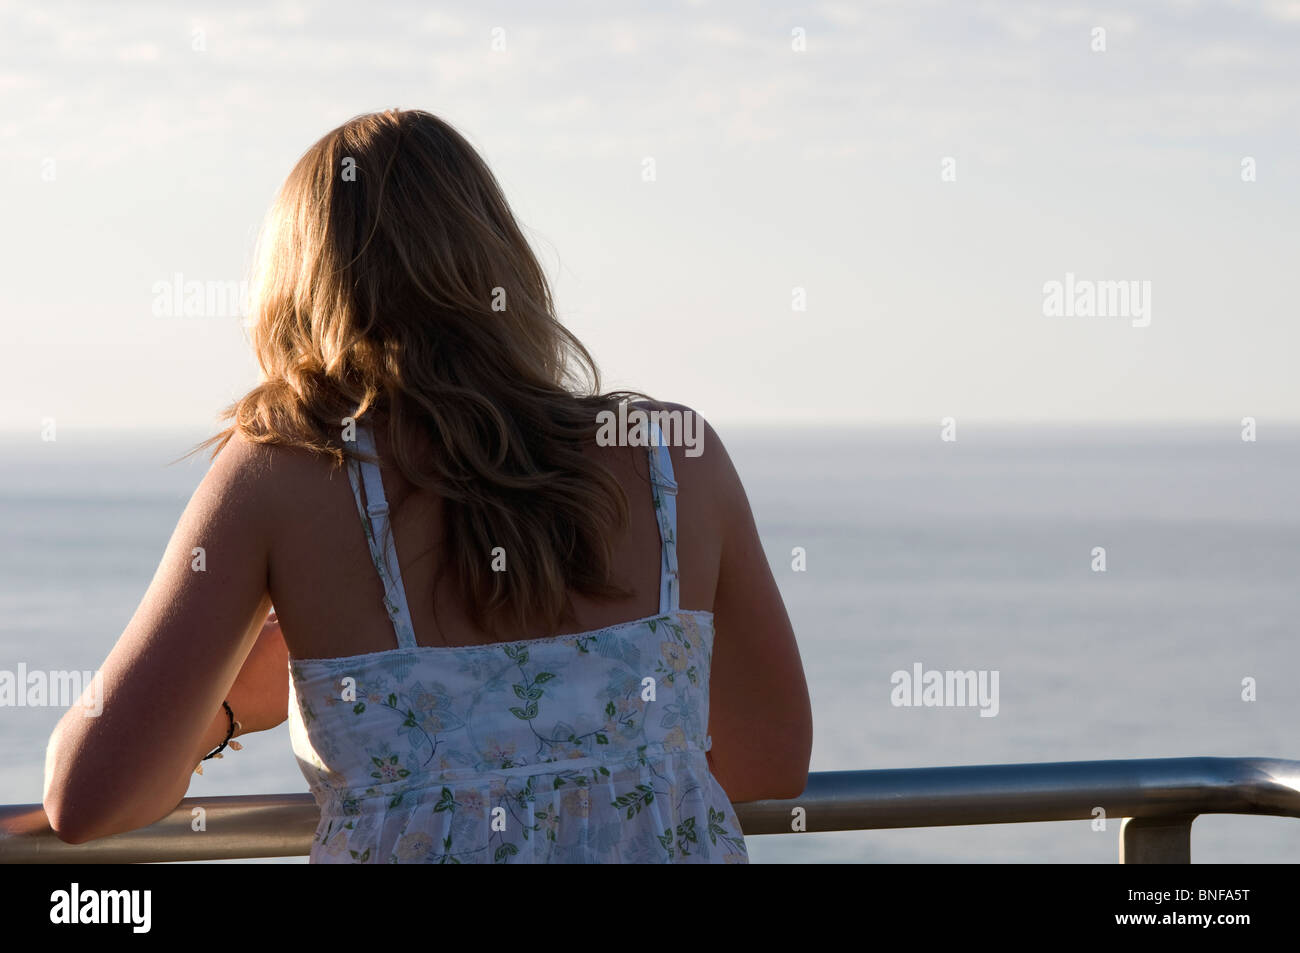 Back view of  woman standing on a balcony looking out at the ocean - Stock Image